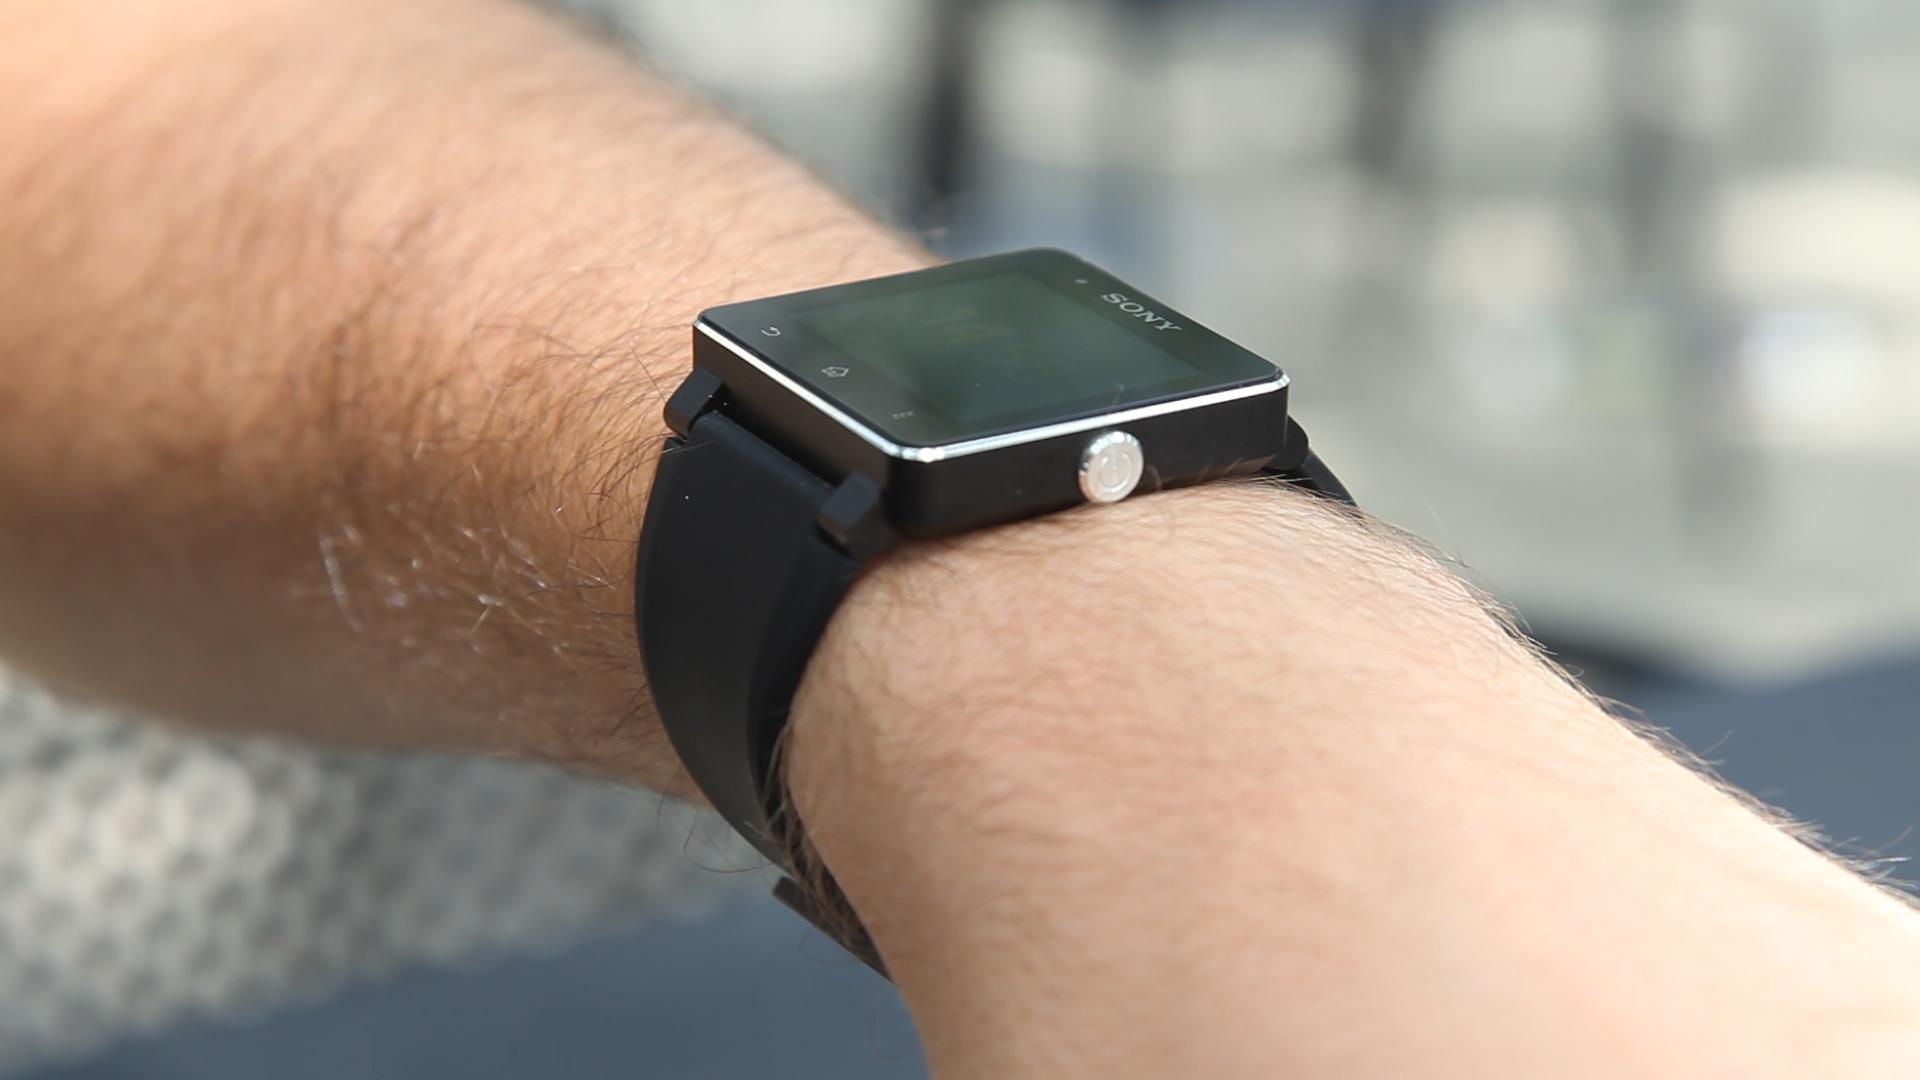 Sony Smartwatch2 Verdict